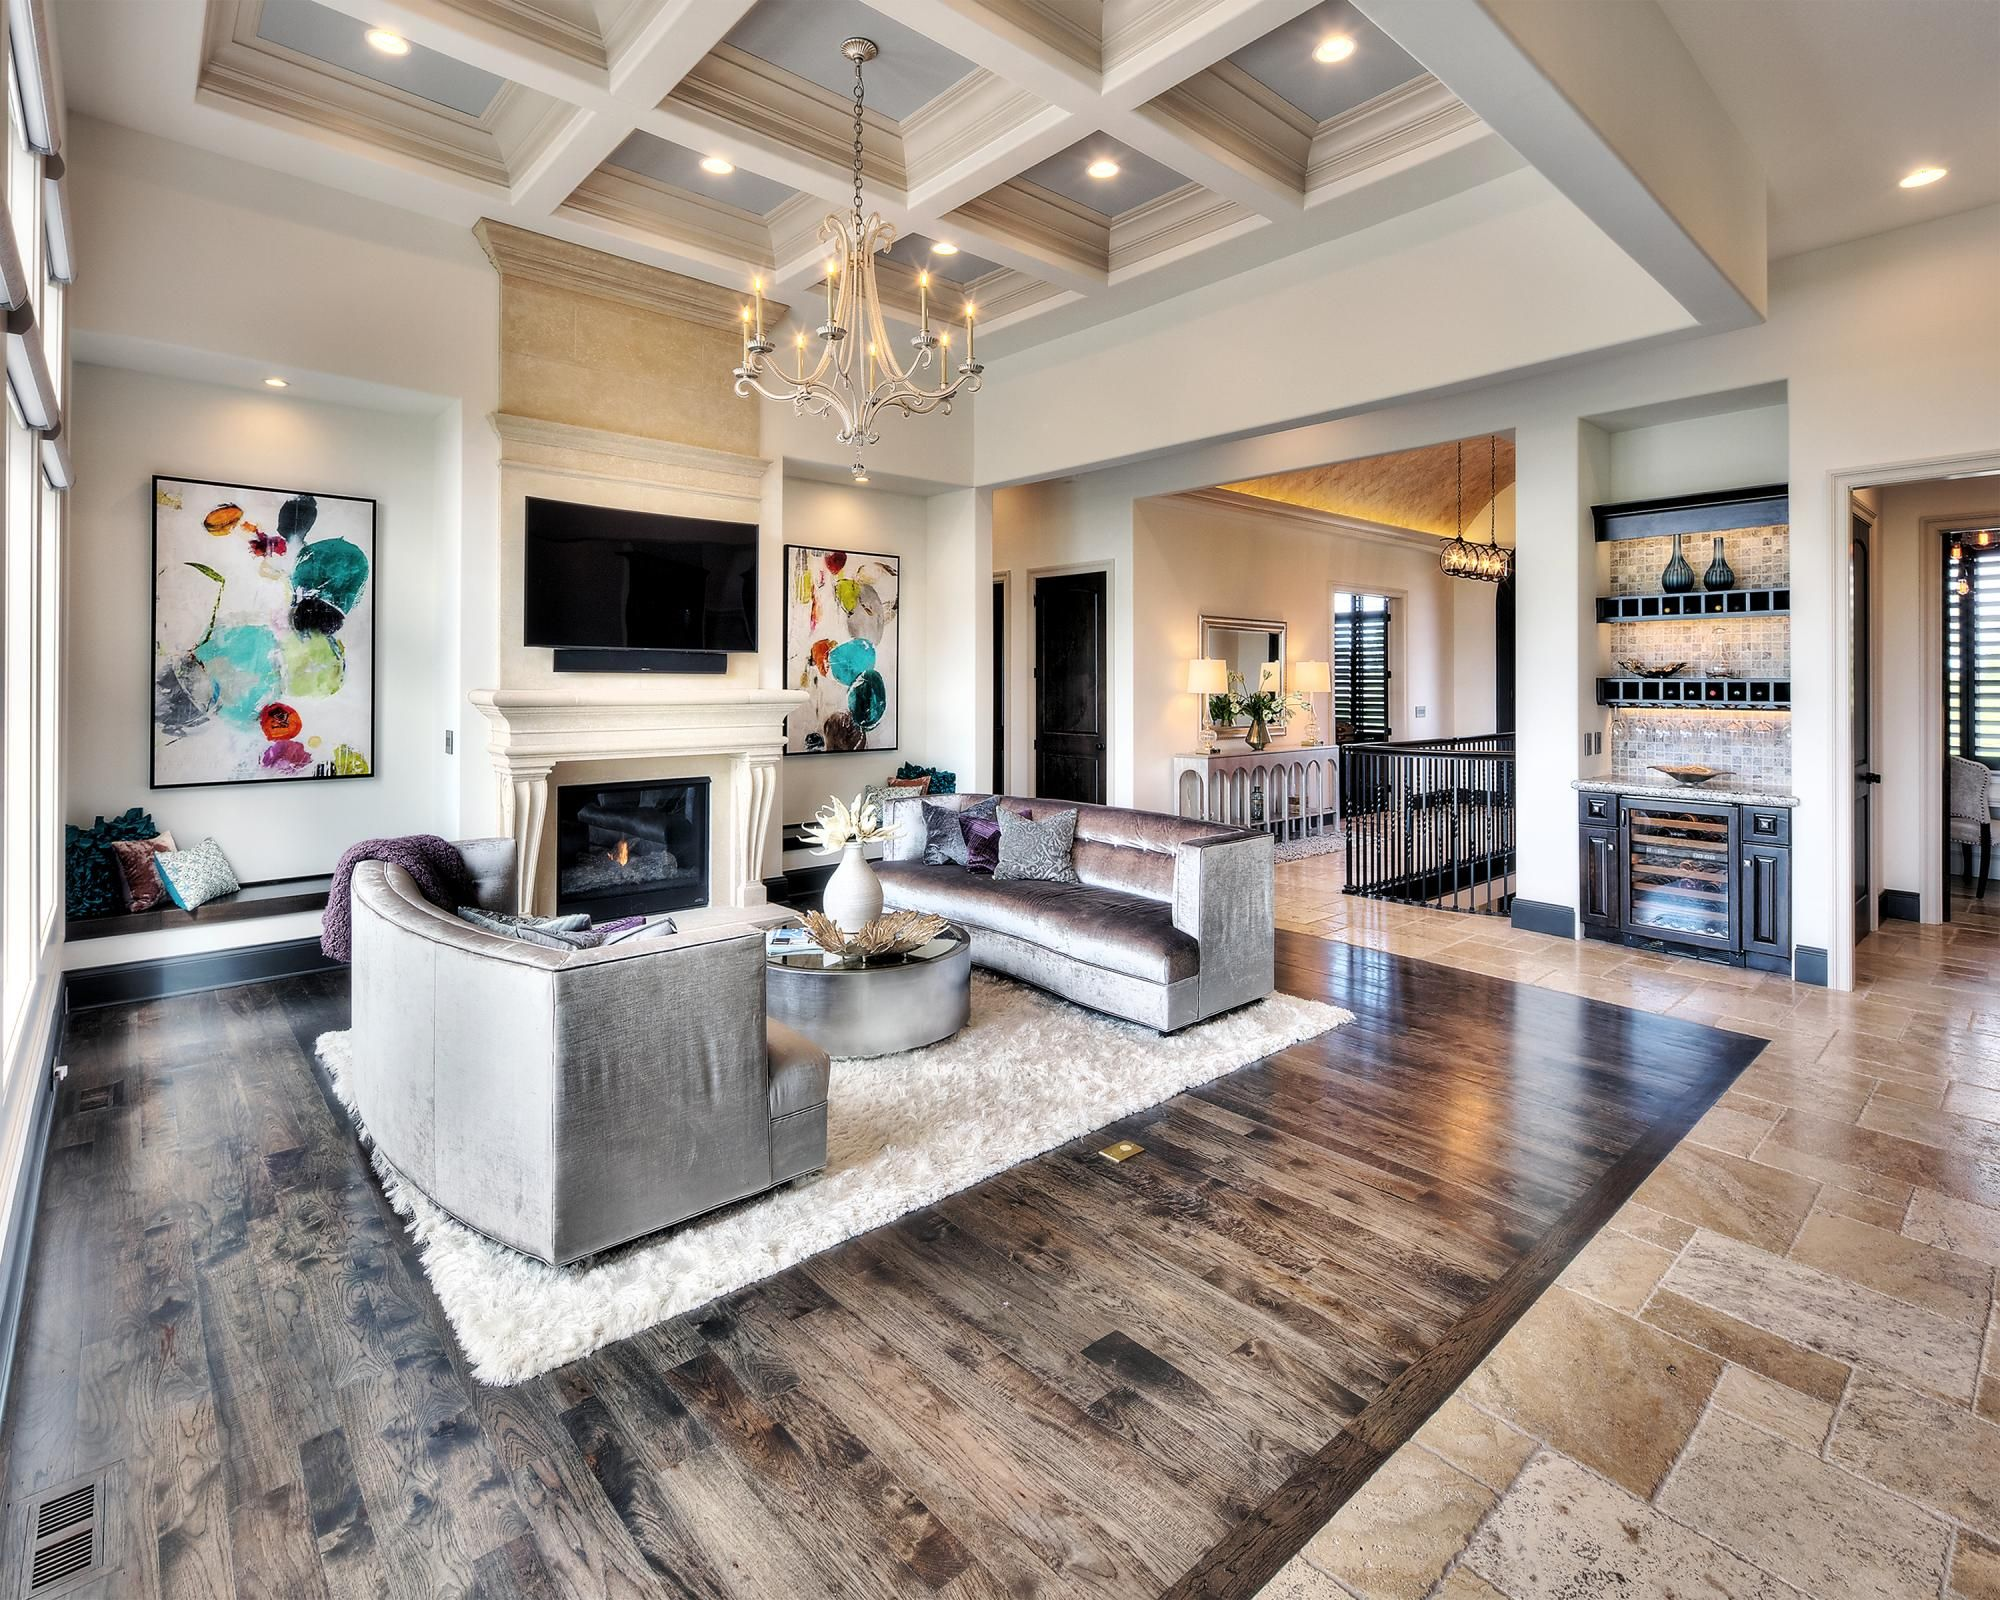 Hearthrooms Photo Gallery Custom Homes In Kansas City Ks Starr Homes Mix Of Tile And Wood Floor Luxury Interior Transitional Living Room Design Home Decor